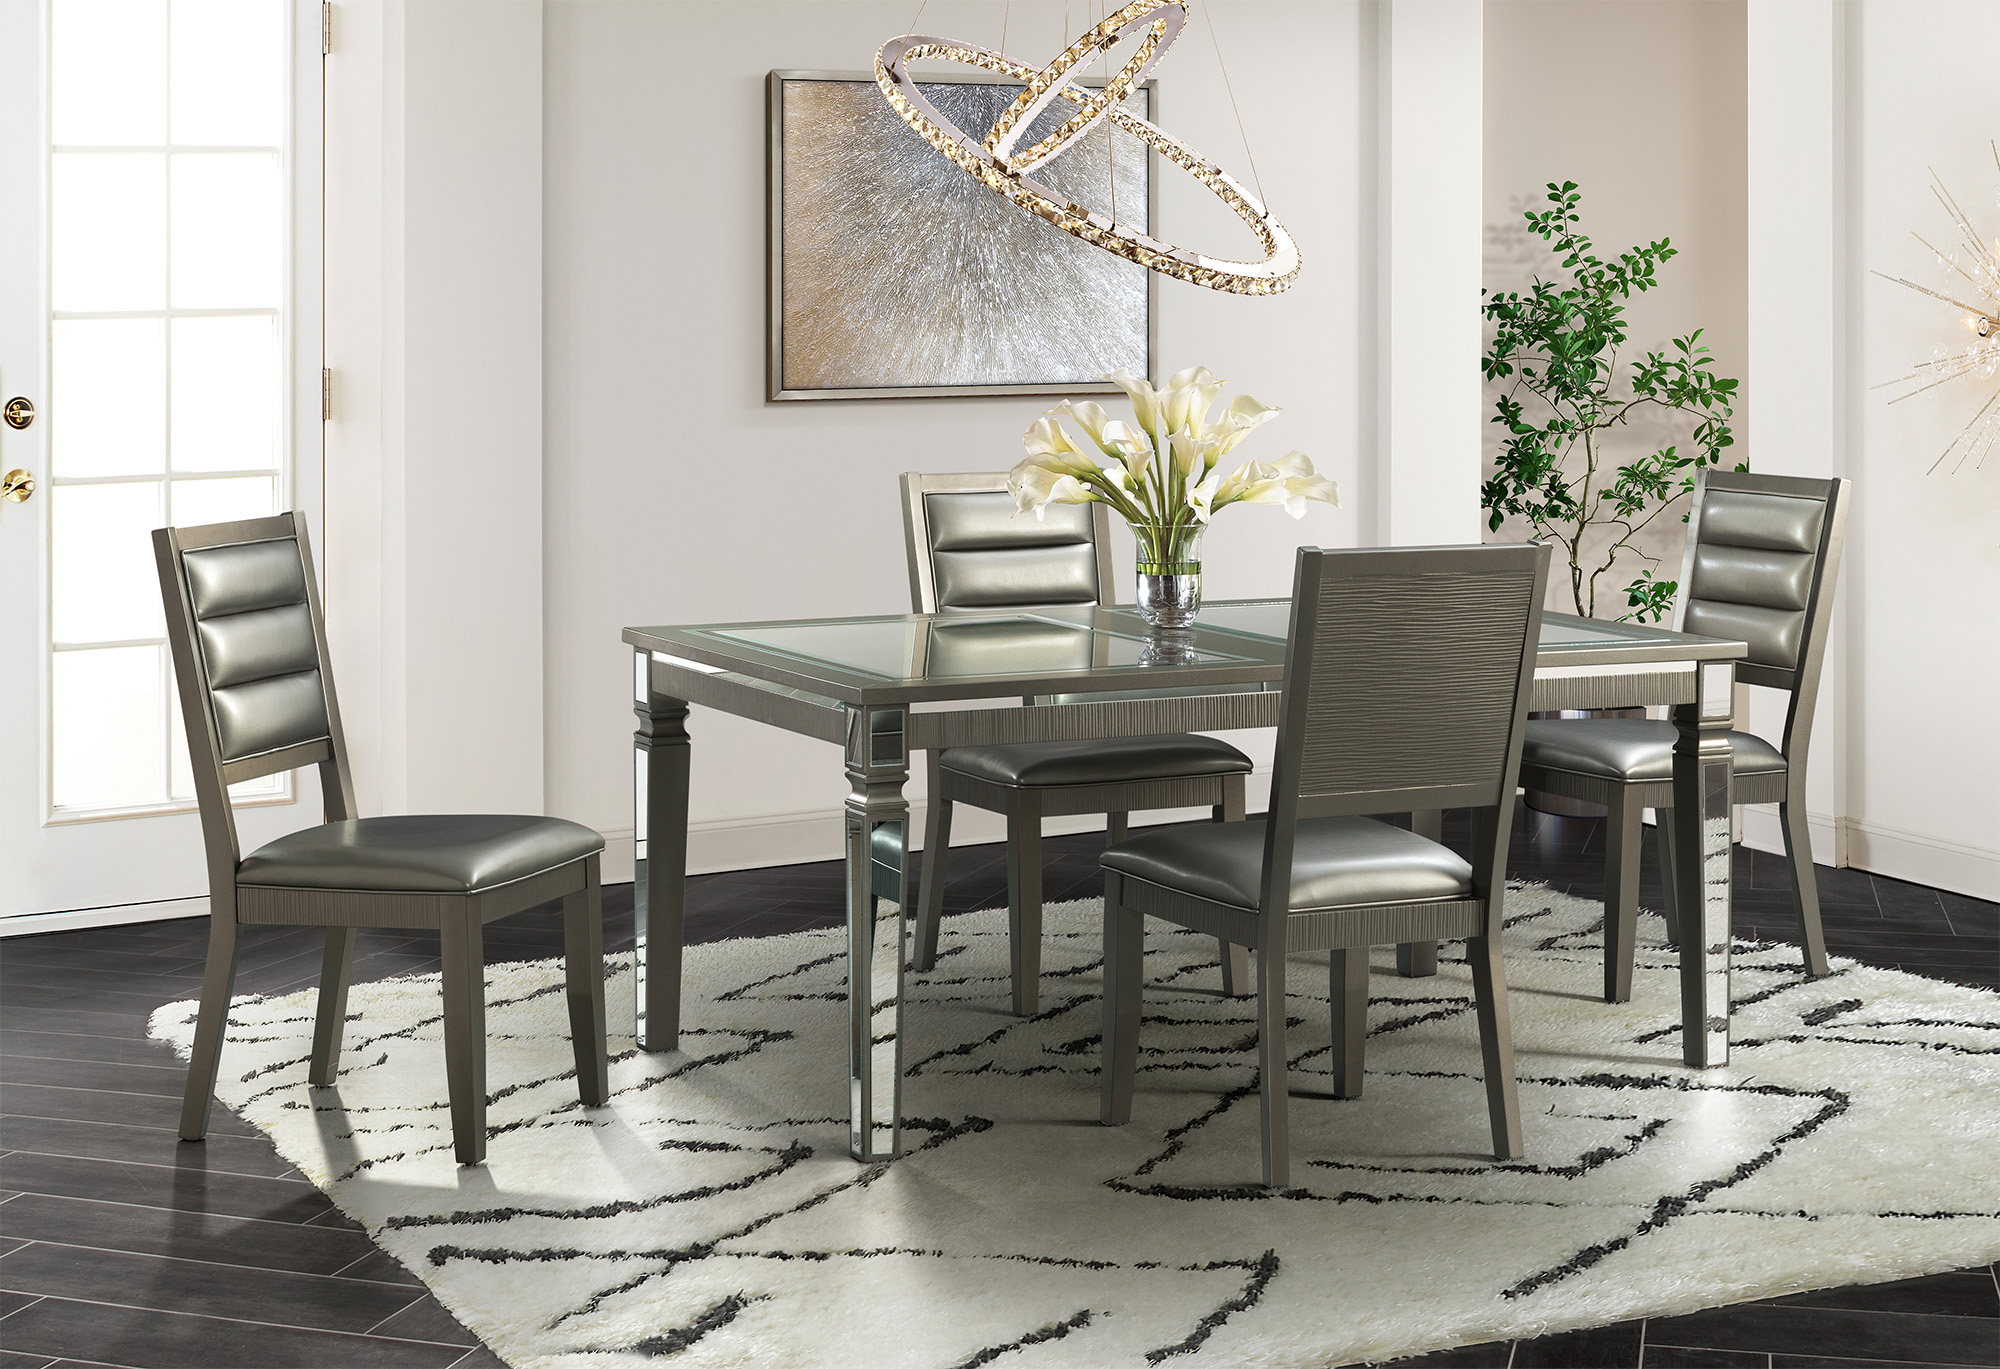 14.5 Glam Dining Collection with 4 chairs